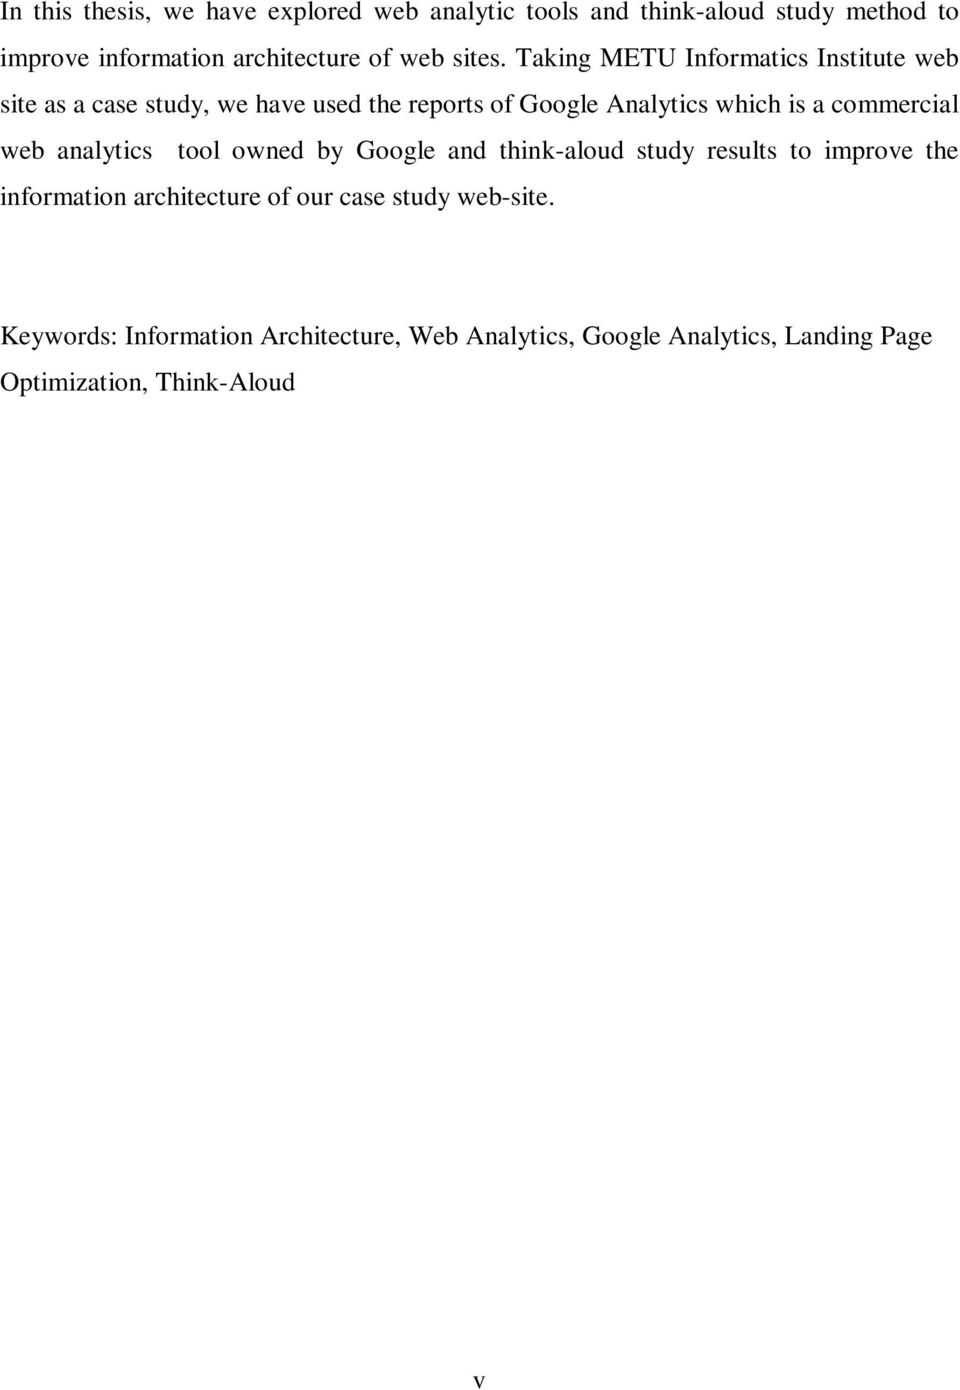 Taking METU Informatics Institute web site as a case study, we have used the reports of Google Analytics which is a